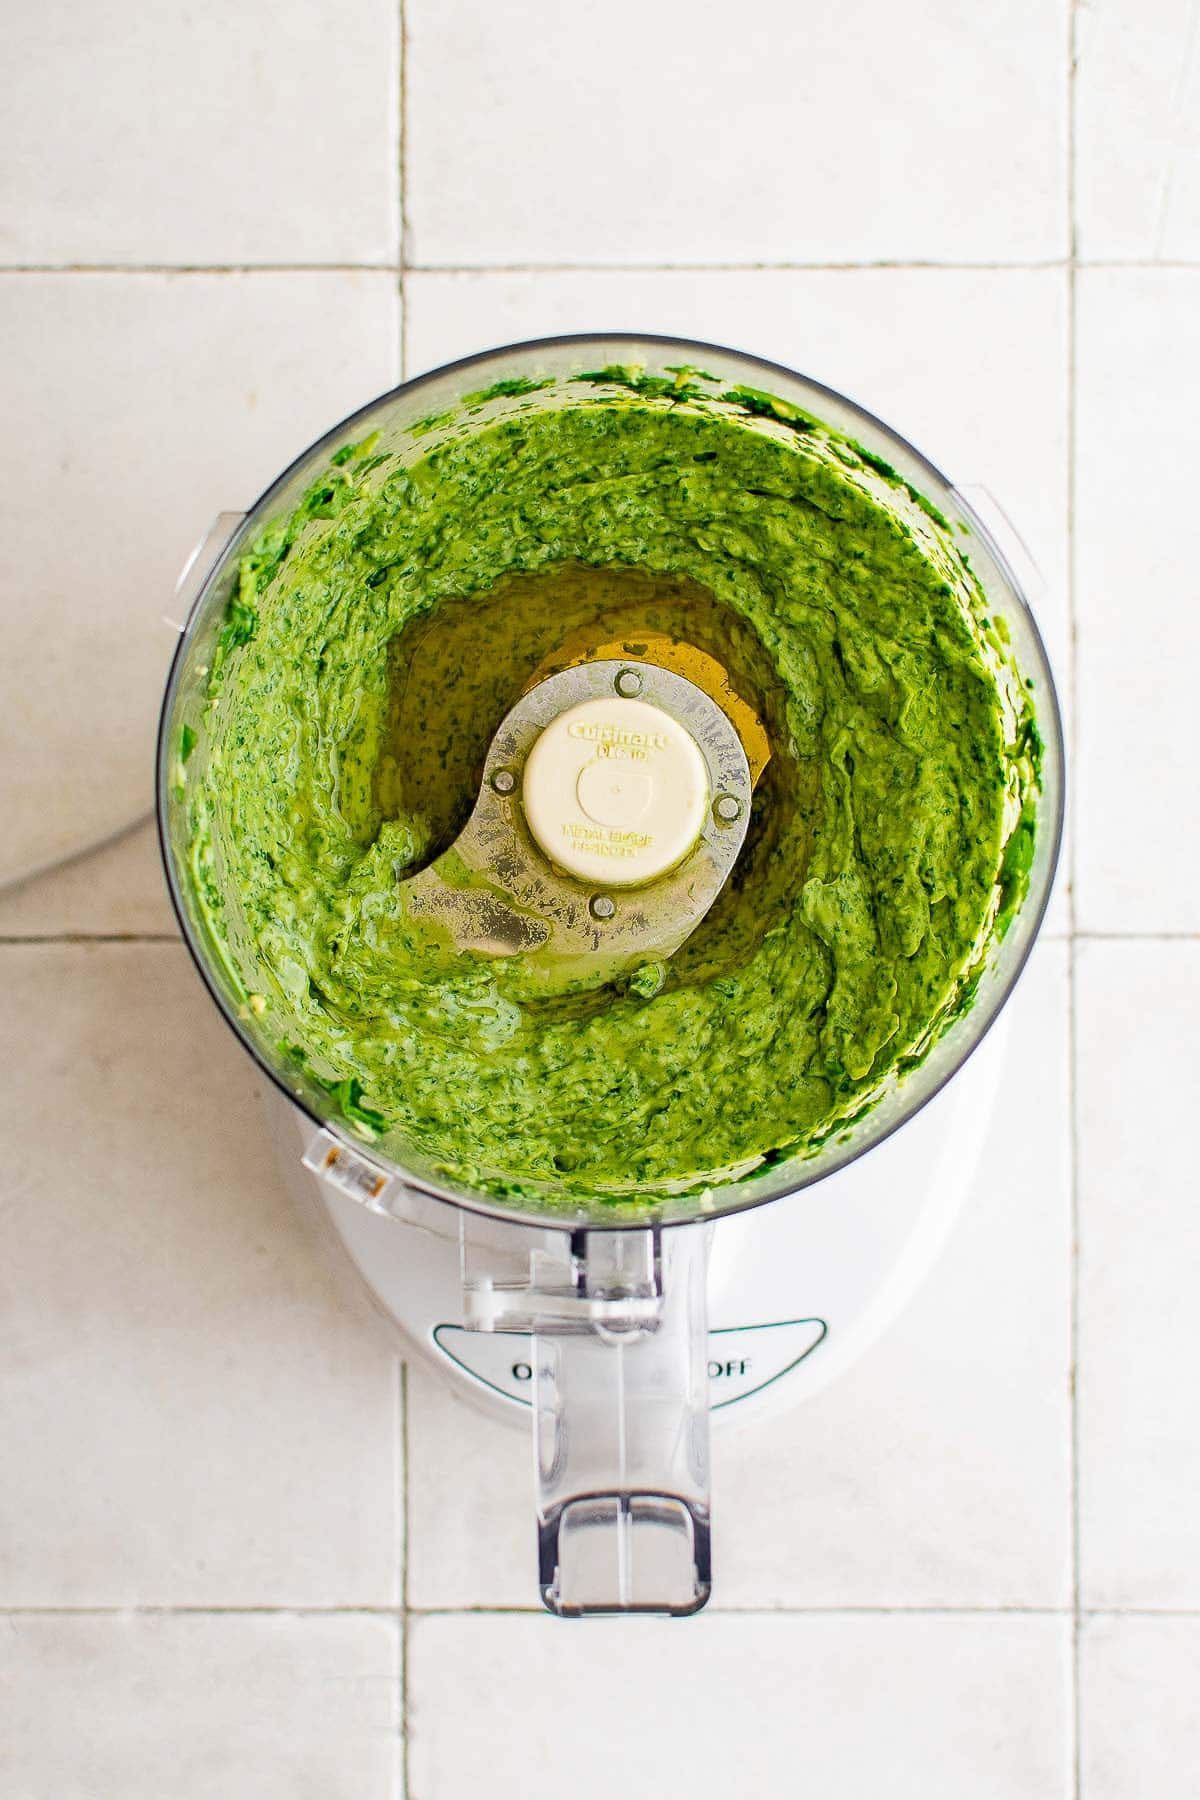 cilantro lime dressing recipe steps before olive oil